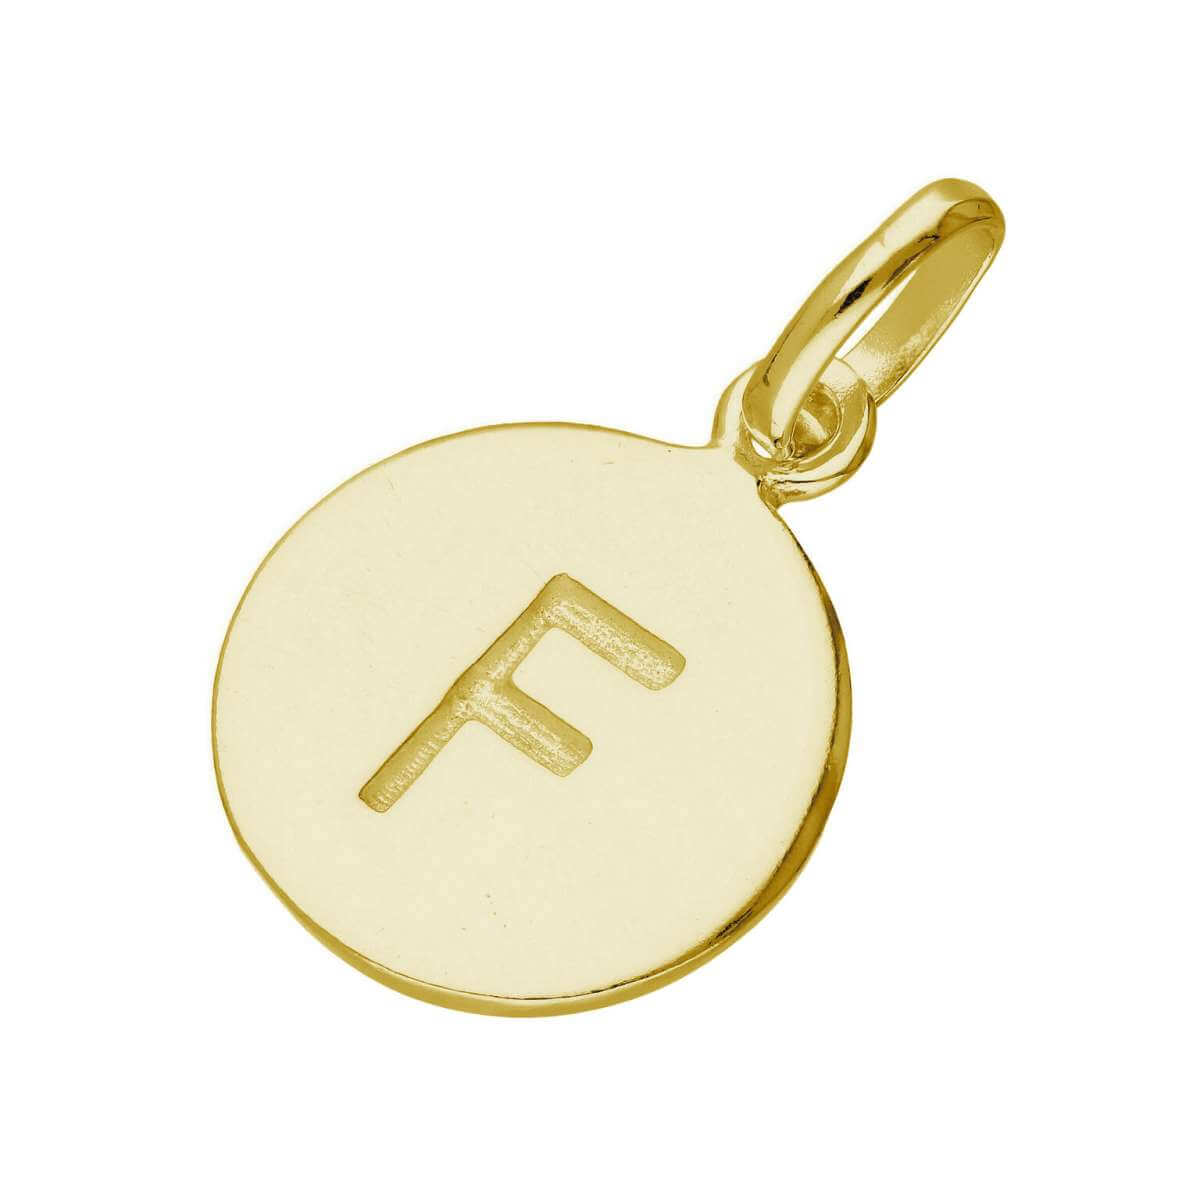 Gold Plated Sterling Silver Engravable Letter F Charm